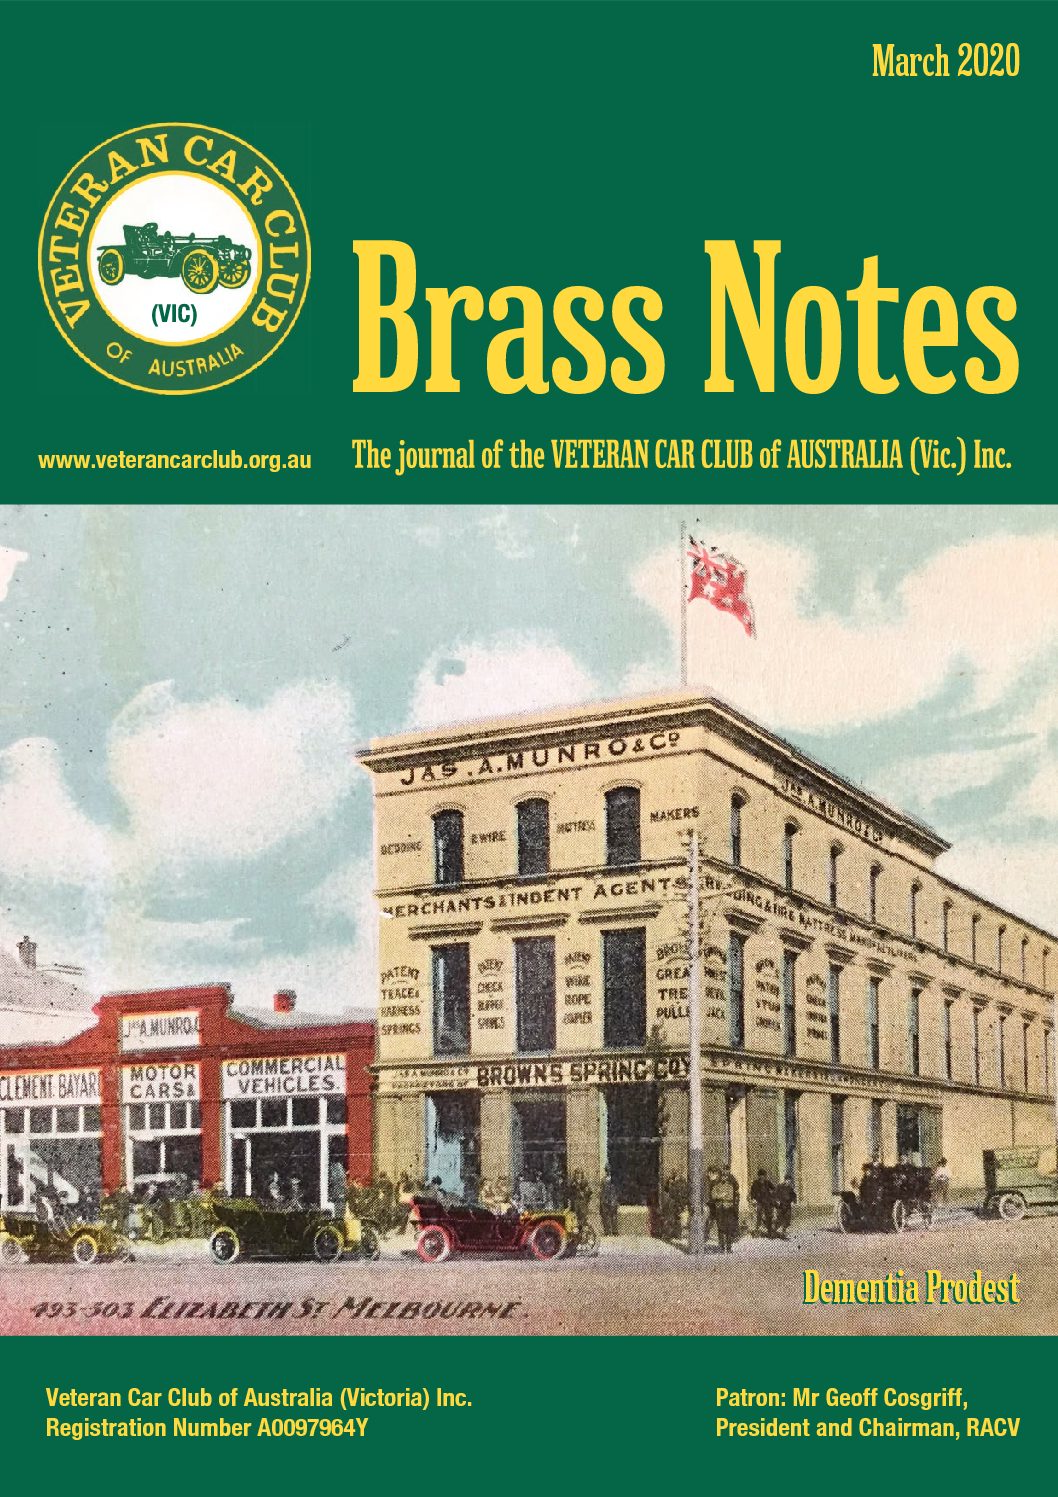 Brass Notes March 2020